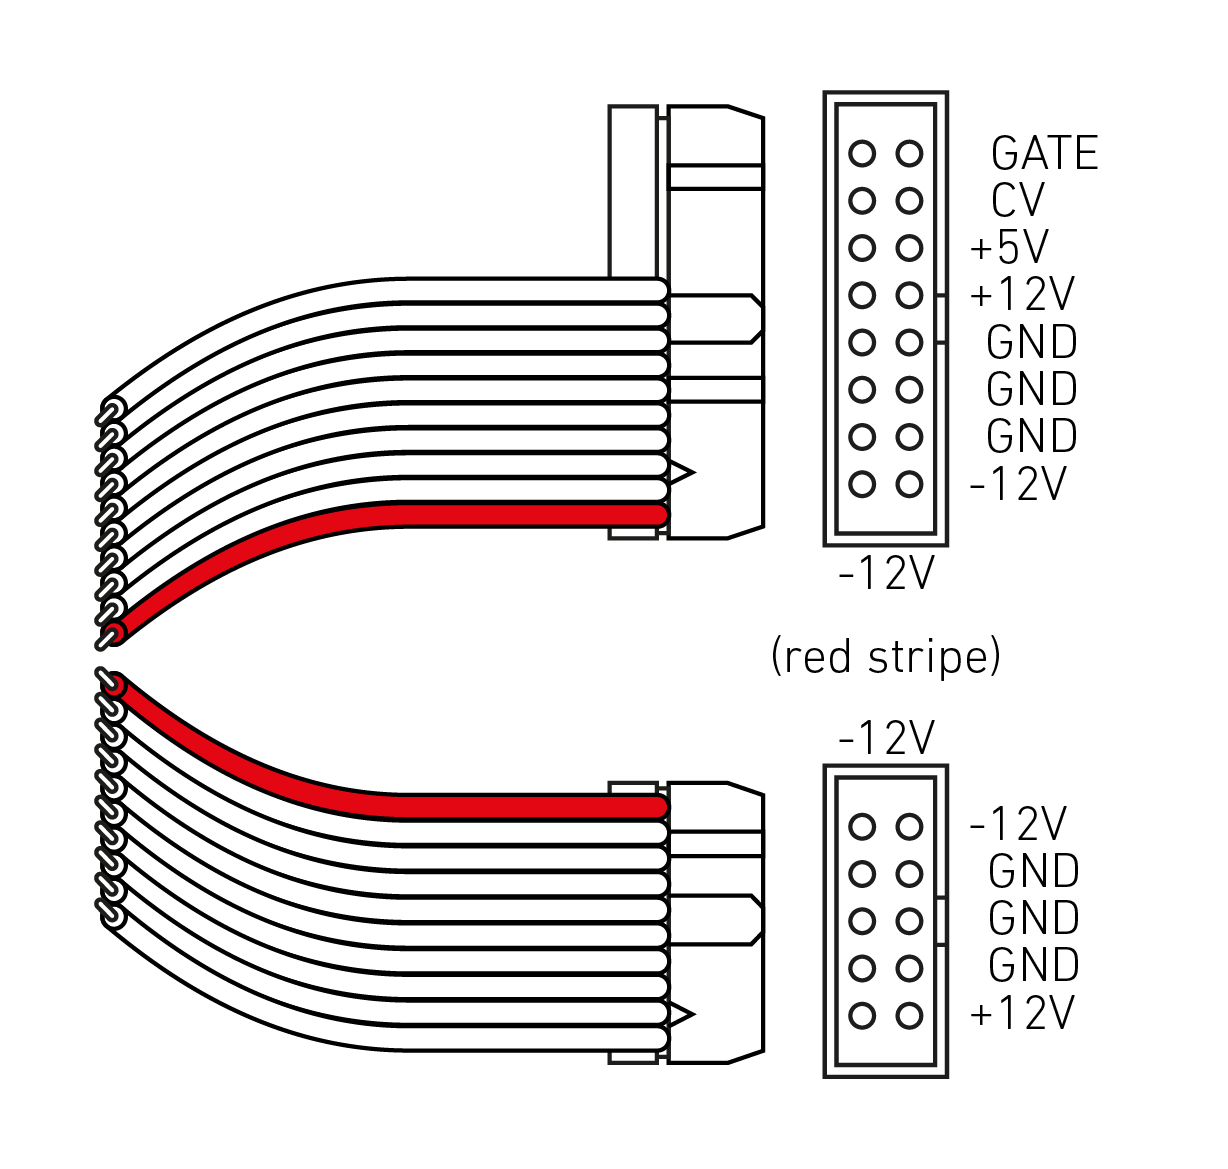 manuals/Powercable.png